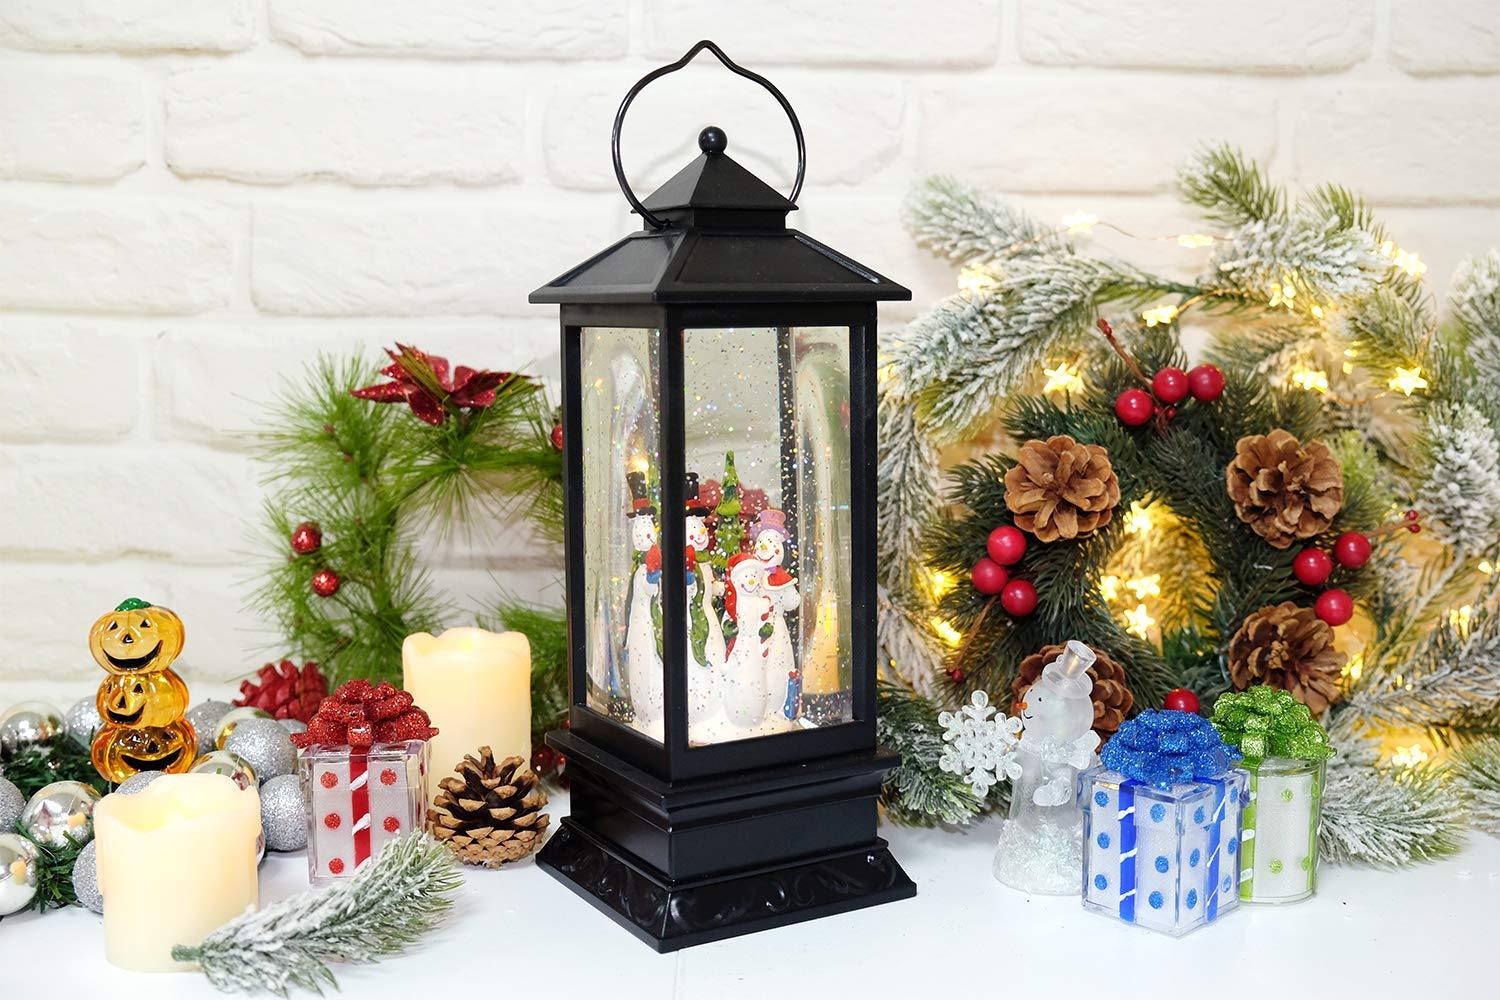 Eldnacele Singing Battery Operated Musical Lighted Christmas Snowman Water Glittering Swirling Snow Globe Lantern with Music Christmas Home Decoration and Gift Snowman Family CDF-4